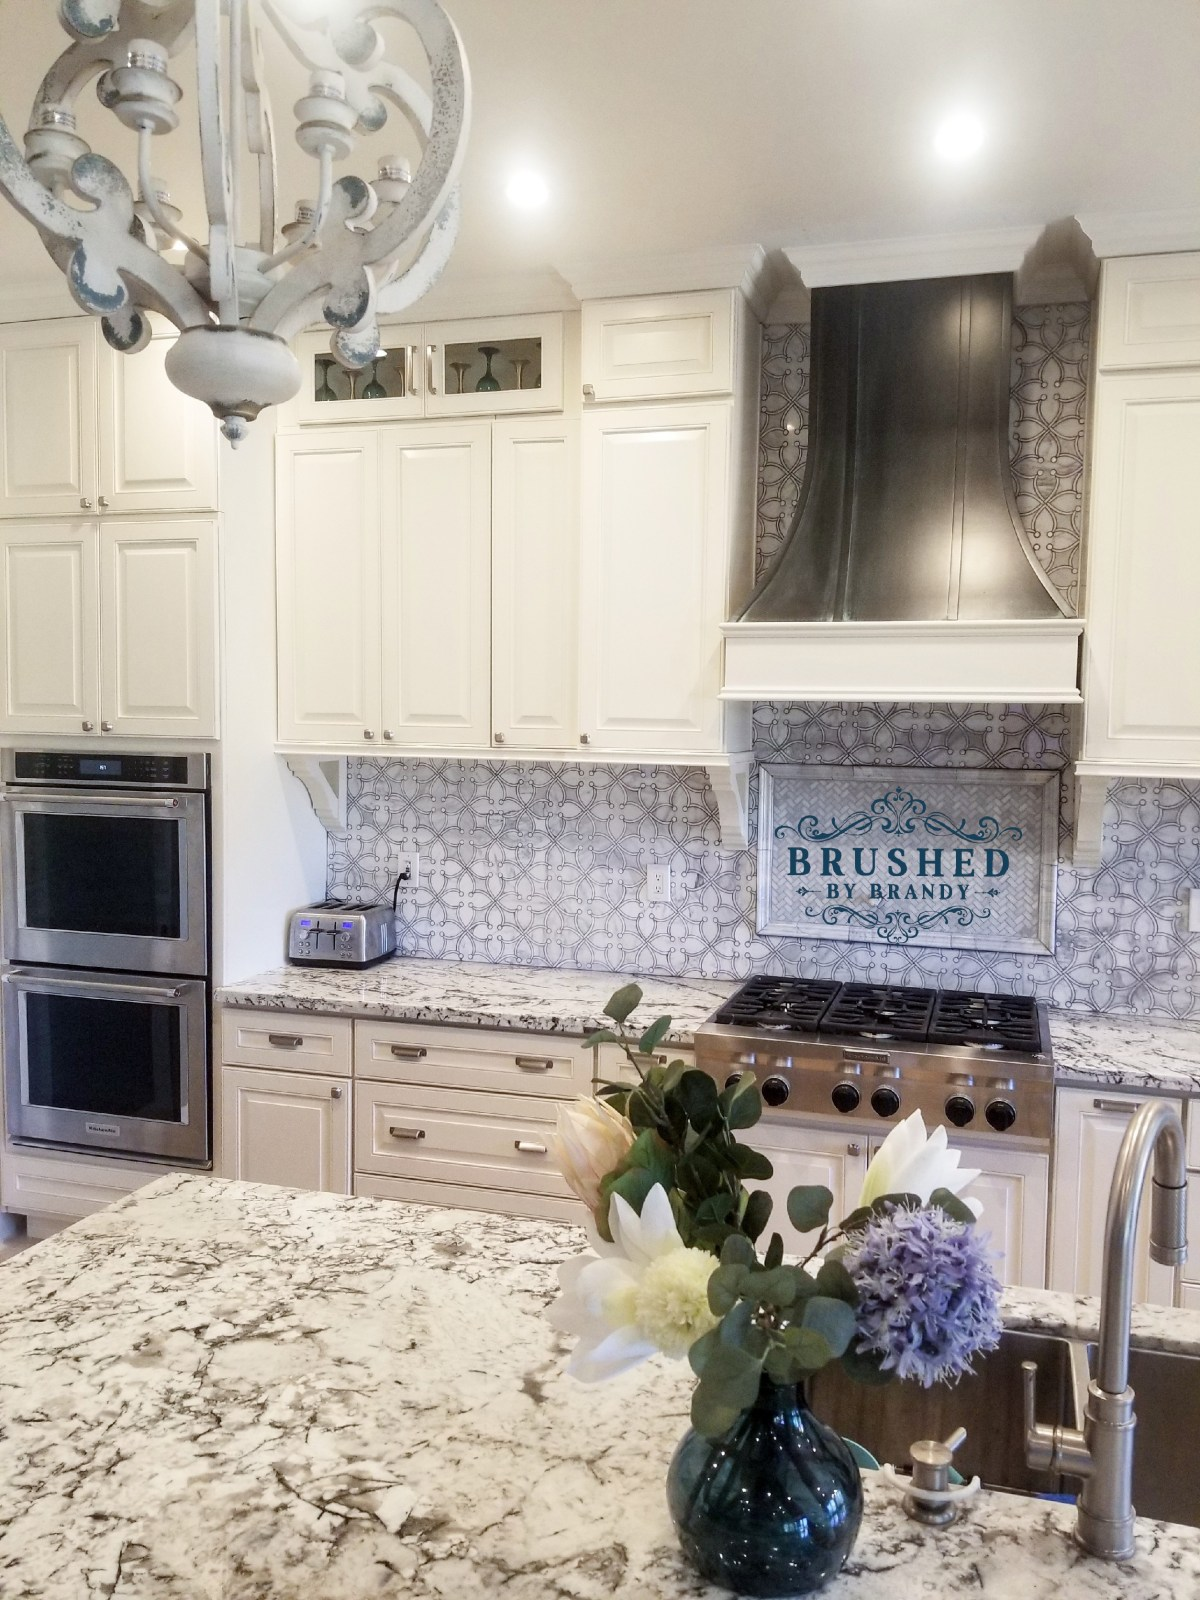 Full Kitchen Remodel with DIY Painted Range Hood